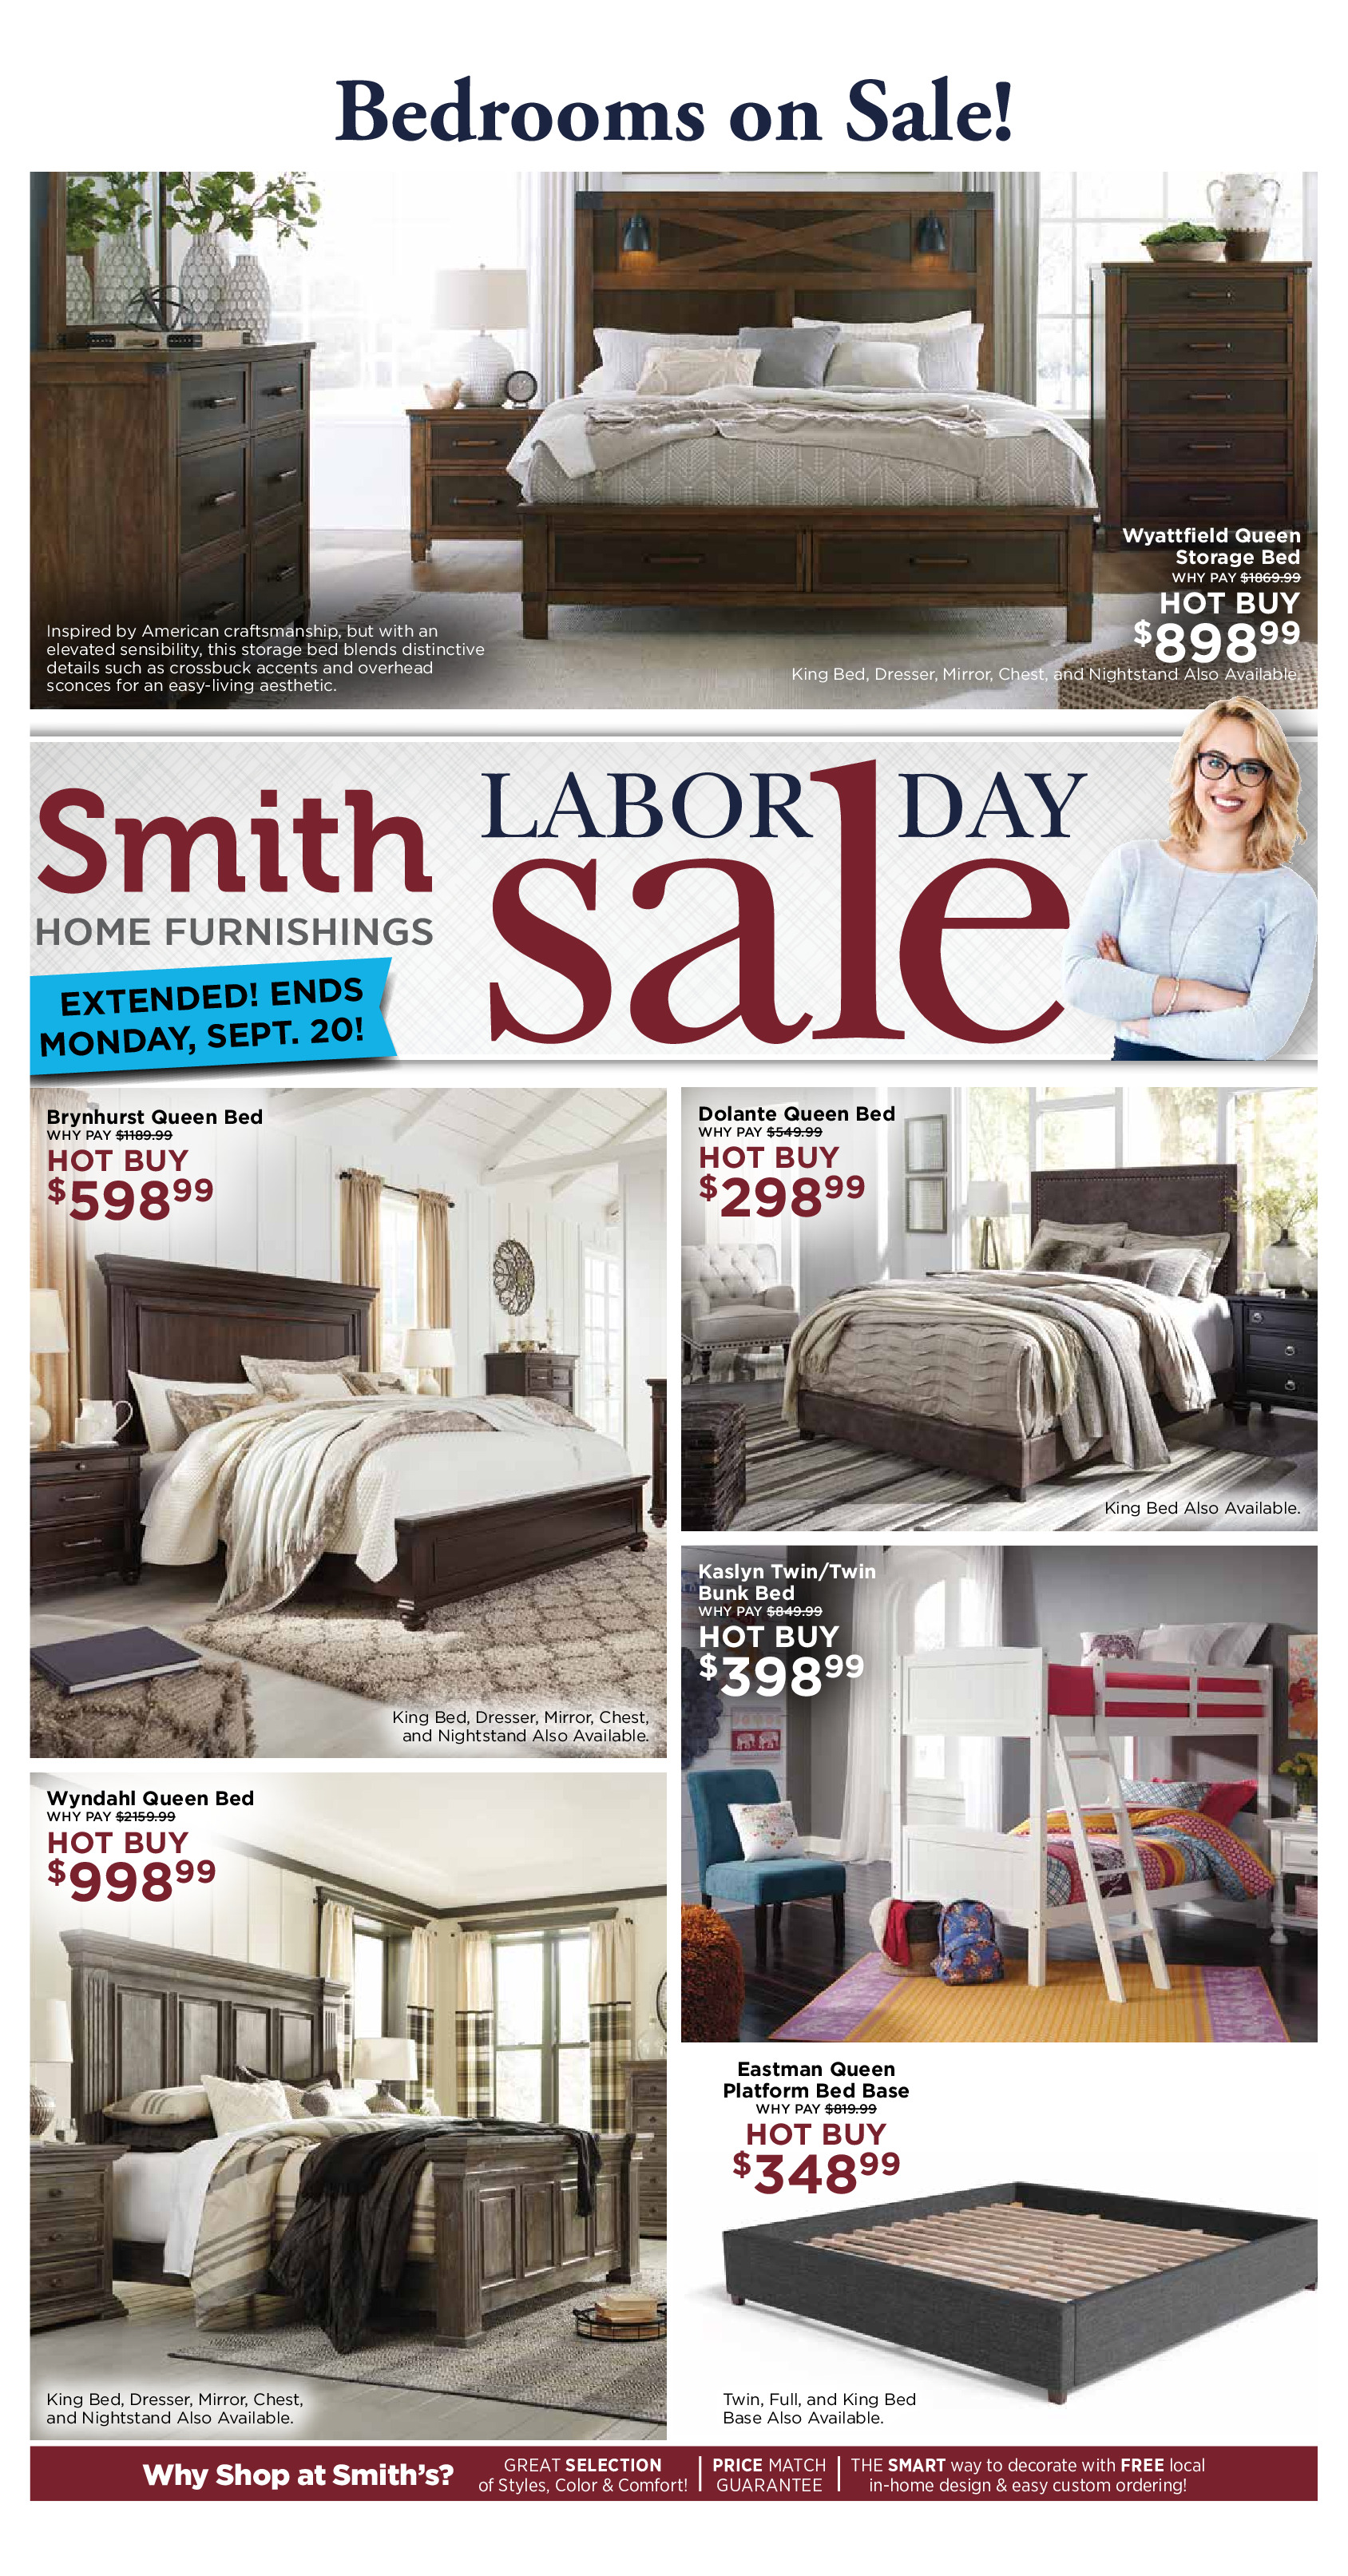 SMHO-9021-2191-LaborDay-WebSpcl (1)